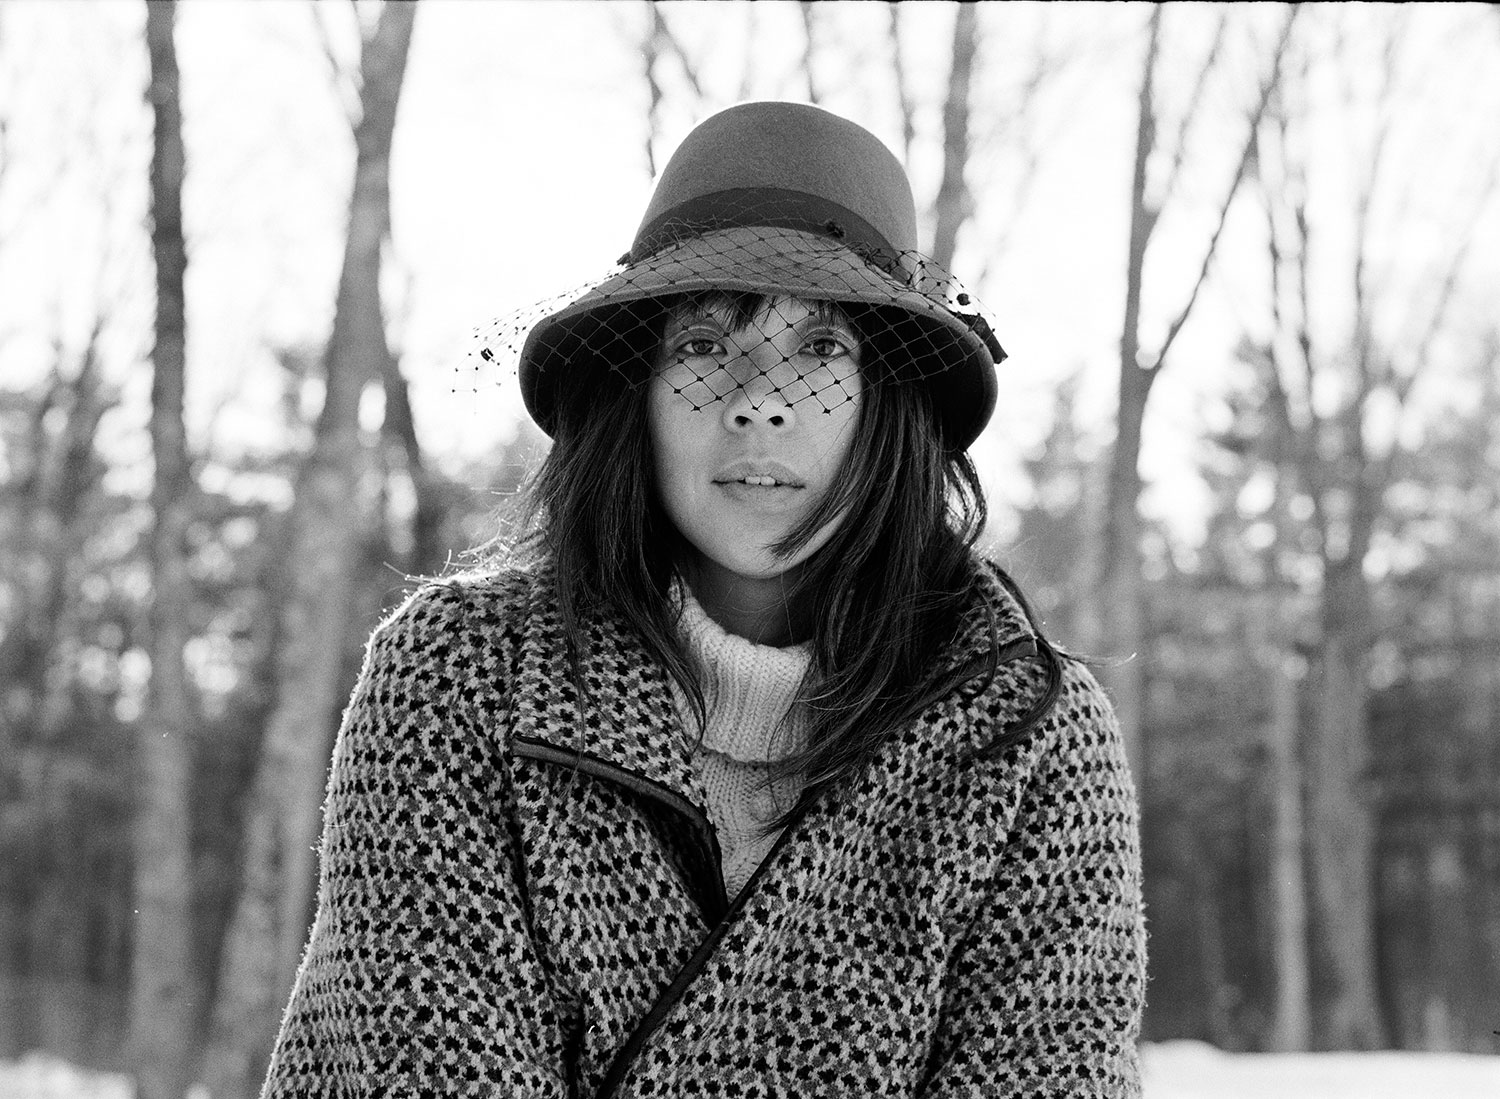 Kazu Makino of Blonde Redhead winter portrait outdoors in vintage hat and overcoat by Abbey Drucker in black and white